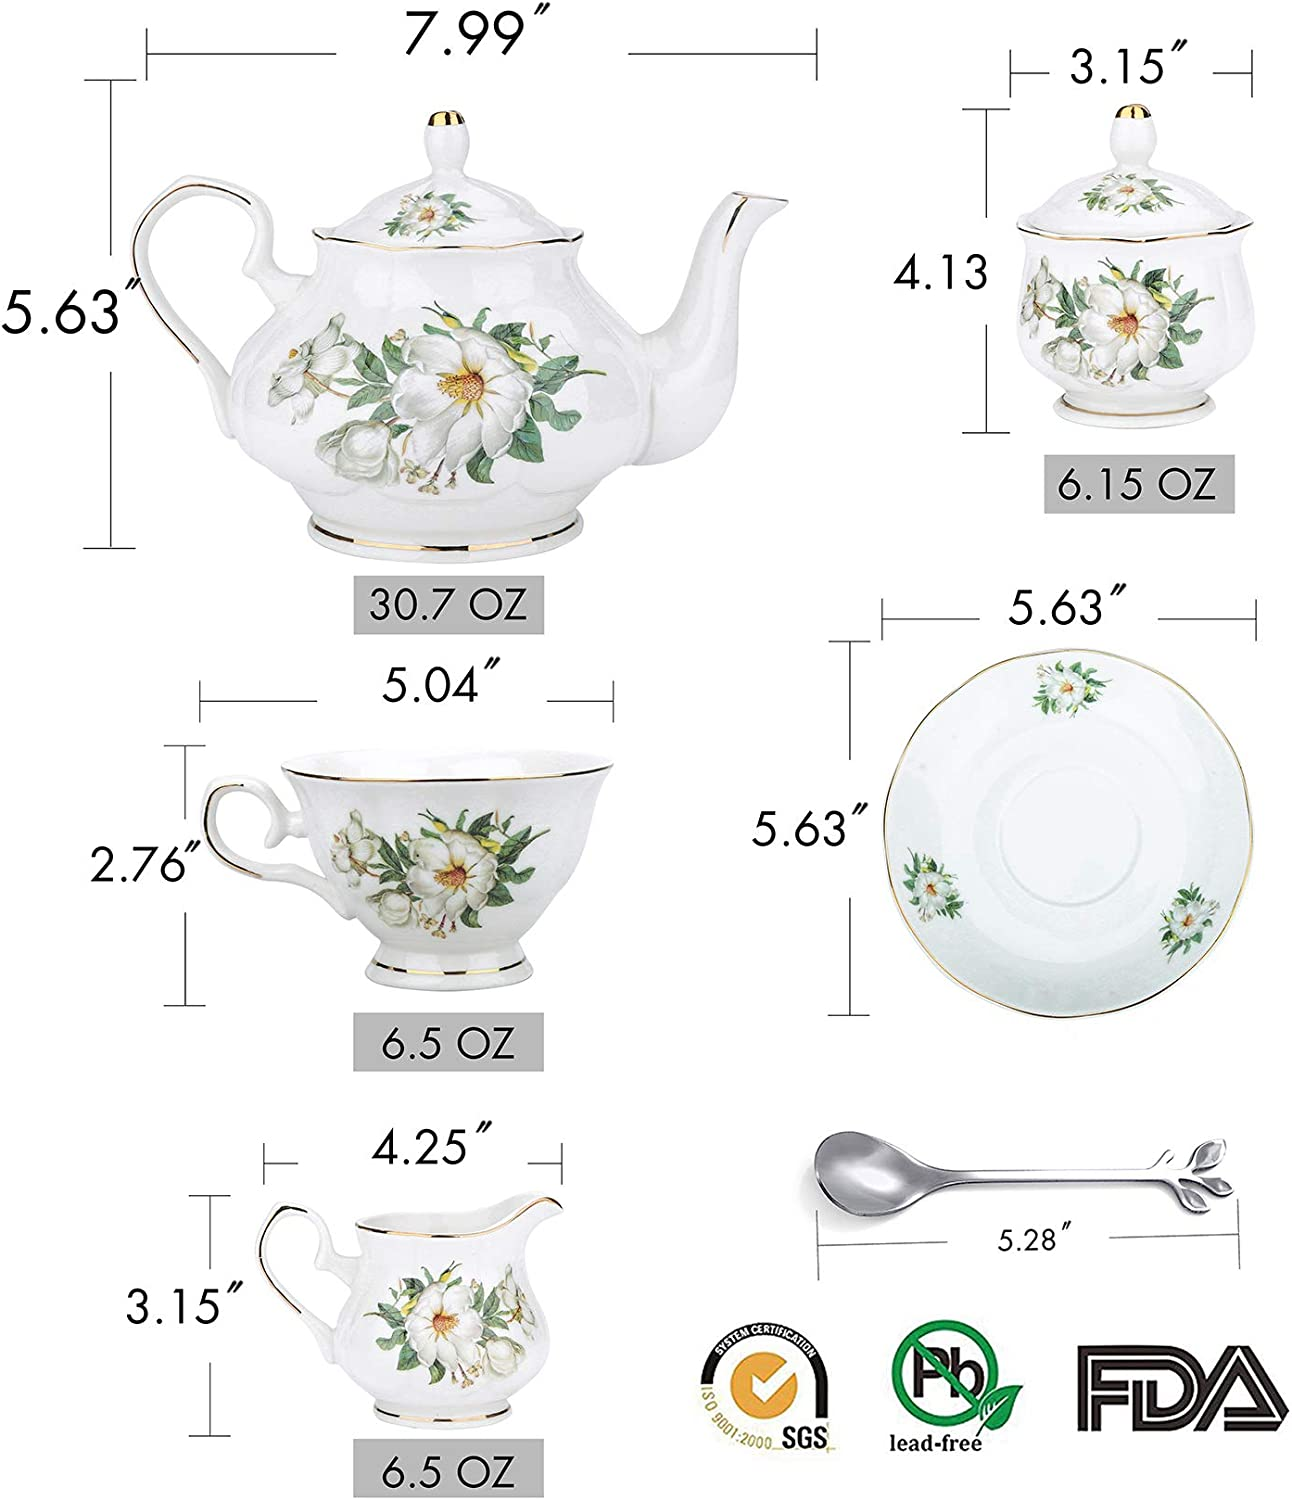 21-Piece Porcelain Ceramic Coffee Tea Gift Sets, Cups& Saucer Service for 6, Teapot, Sugar Bowl, Creamer Pitcher and Teaspoons. camellia